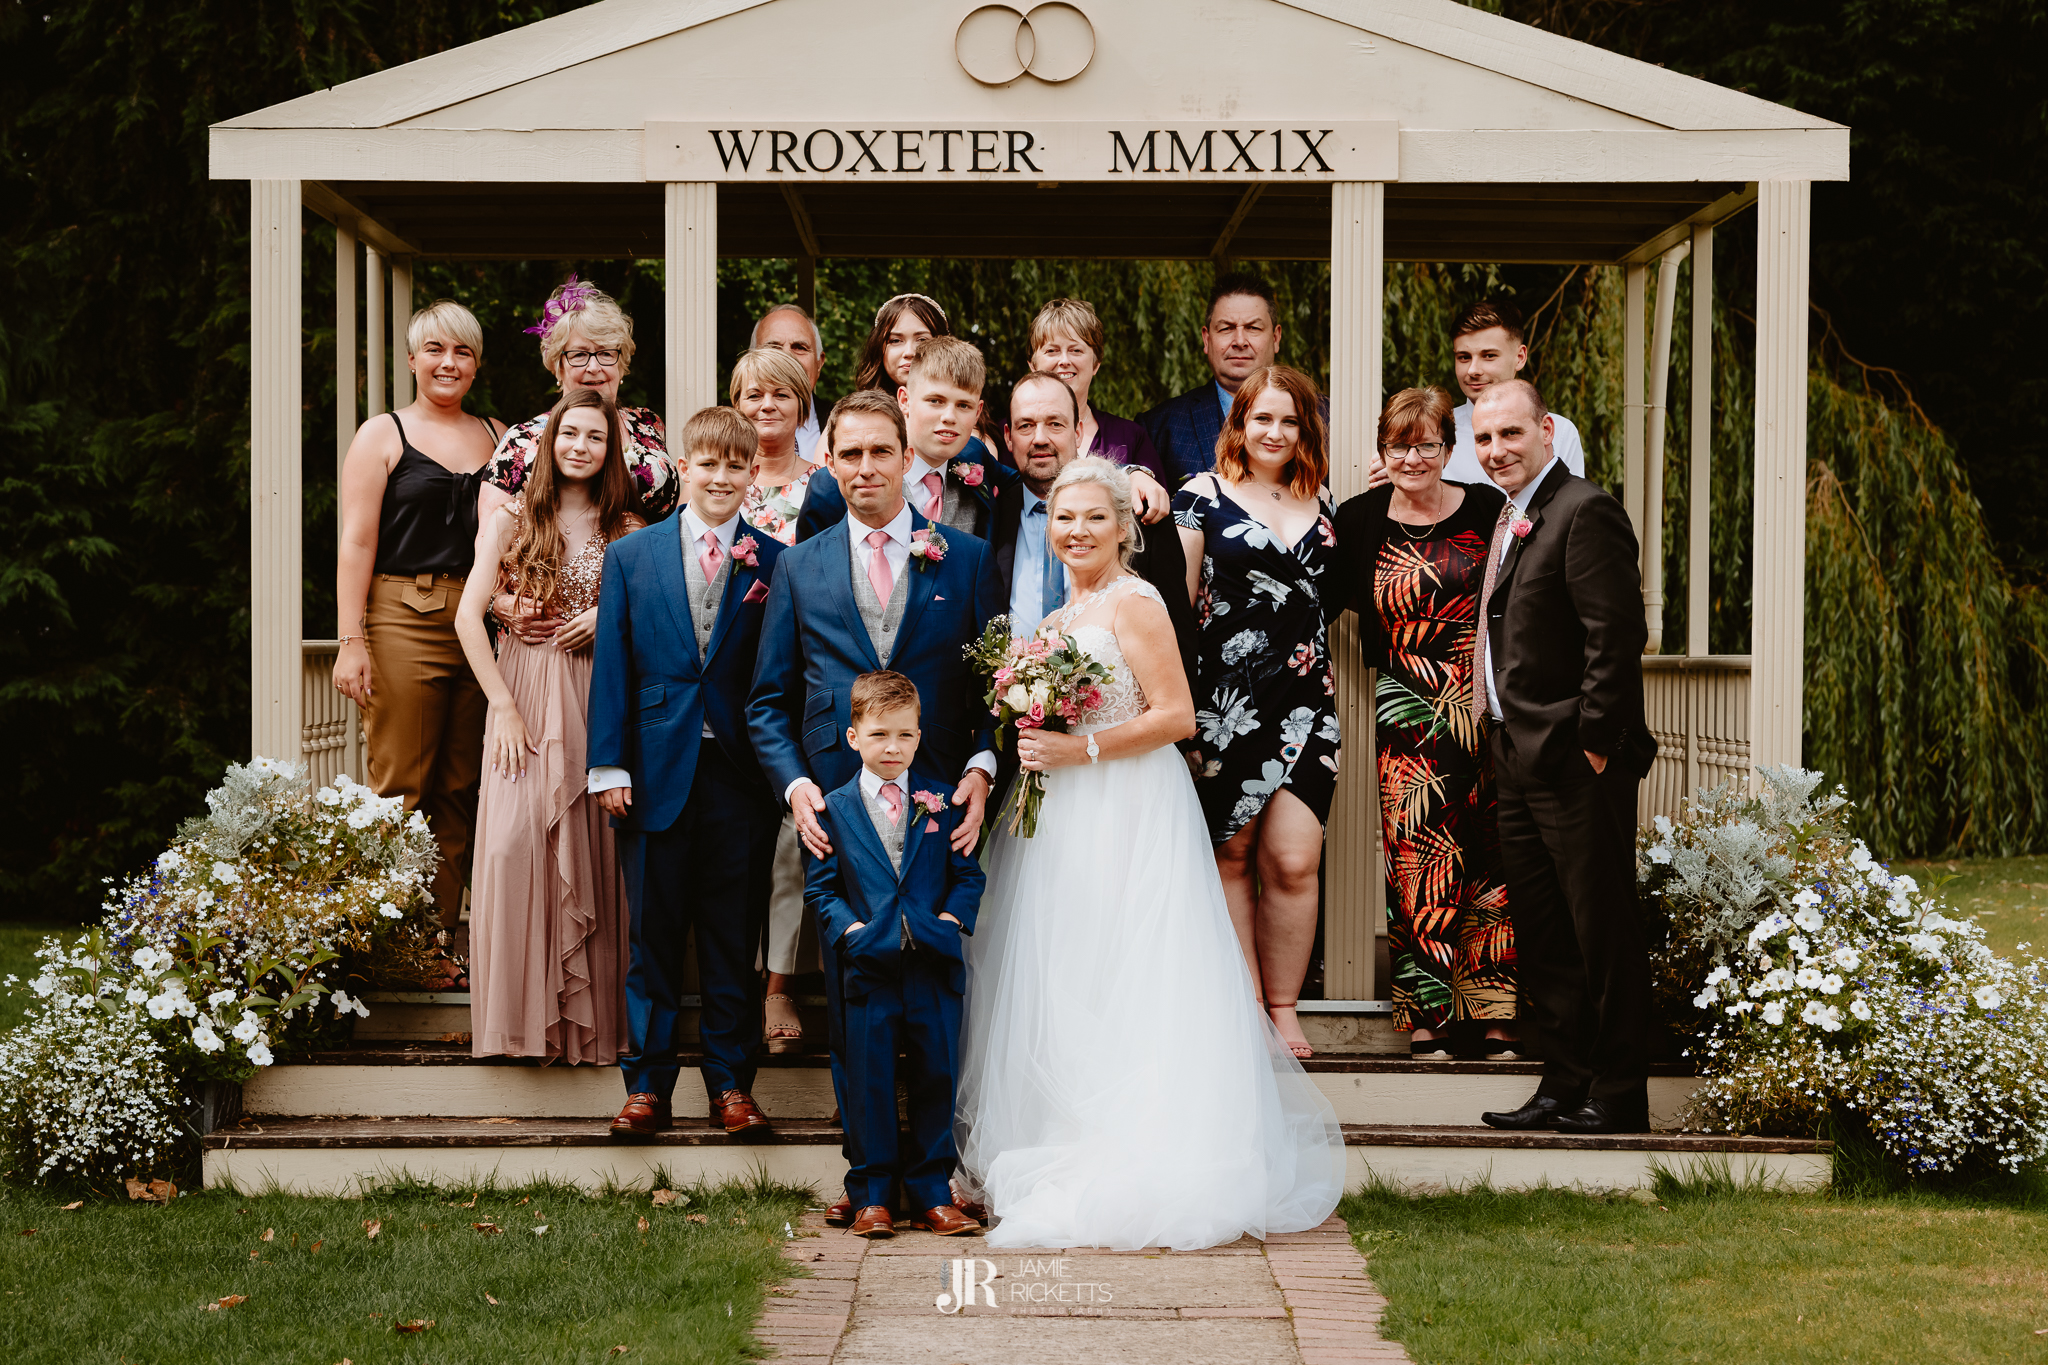 Wroxeter-Hotel-Wedding-Photography-In-Shropshire-By-Shropshire-Wedding-Photographer-Jamie-Ricketts-098.JPG